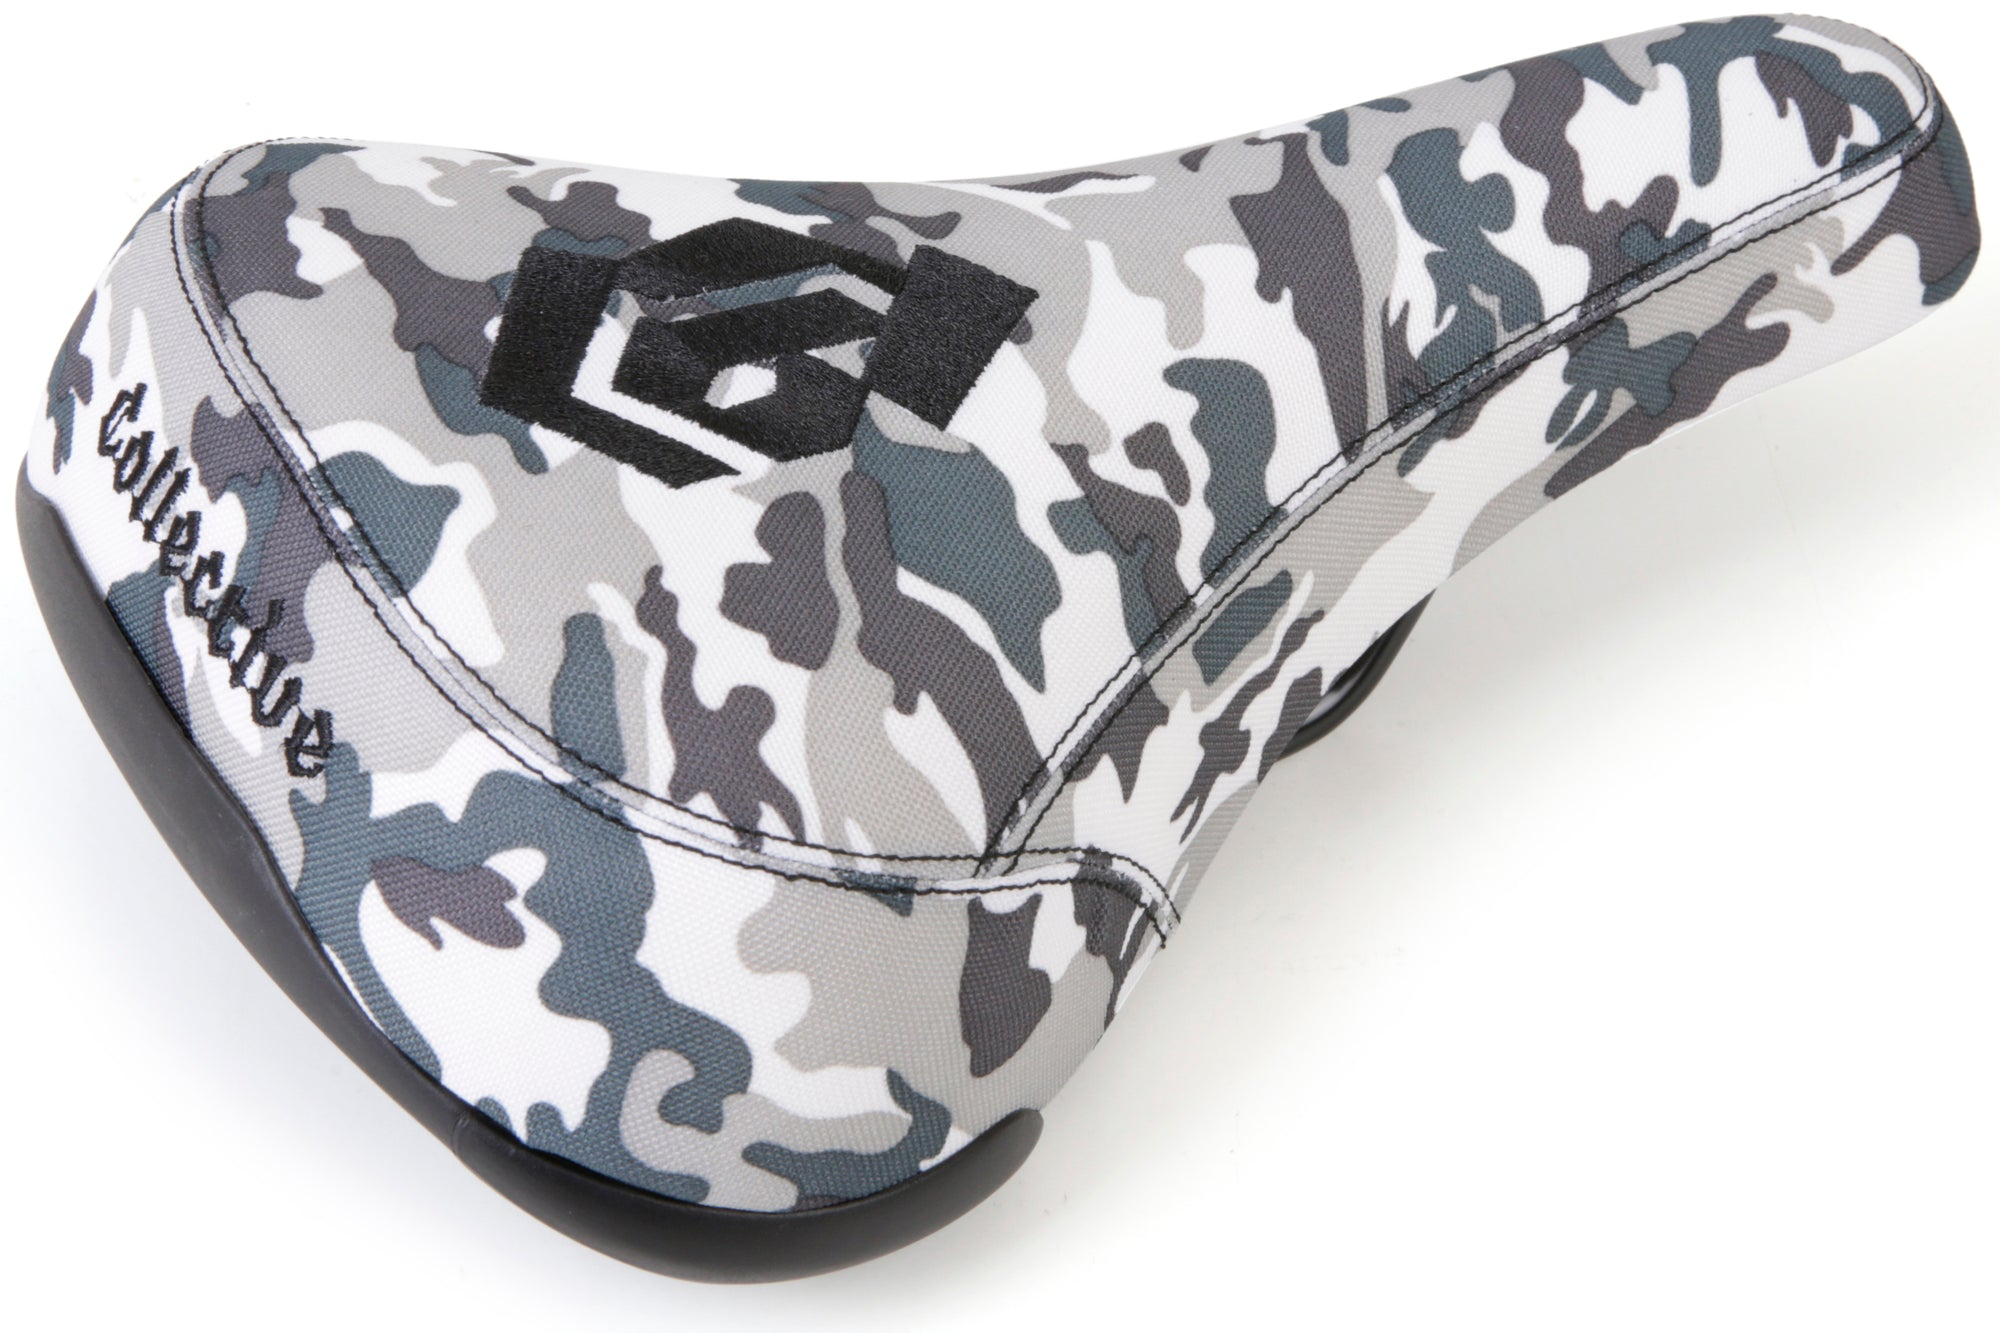 Collective Bikes MONOGRAM SEAT - SNOW CAMO